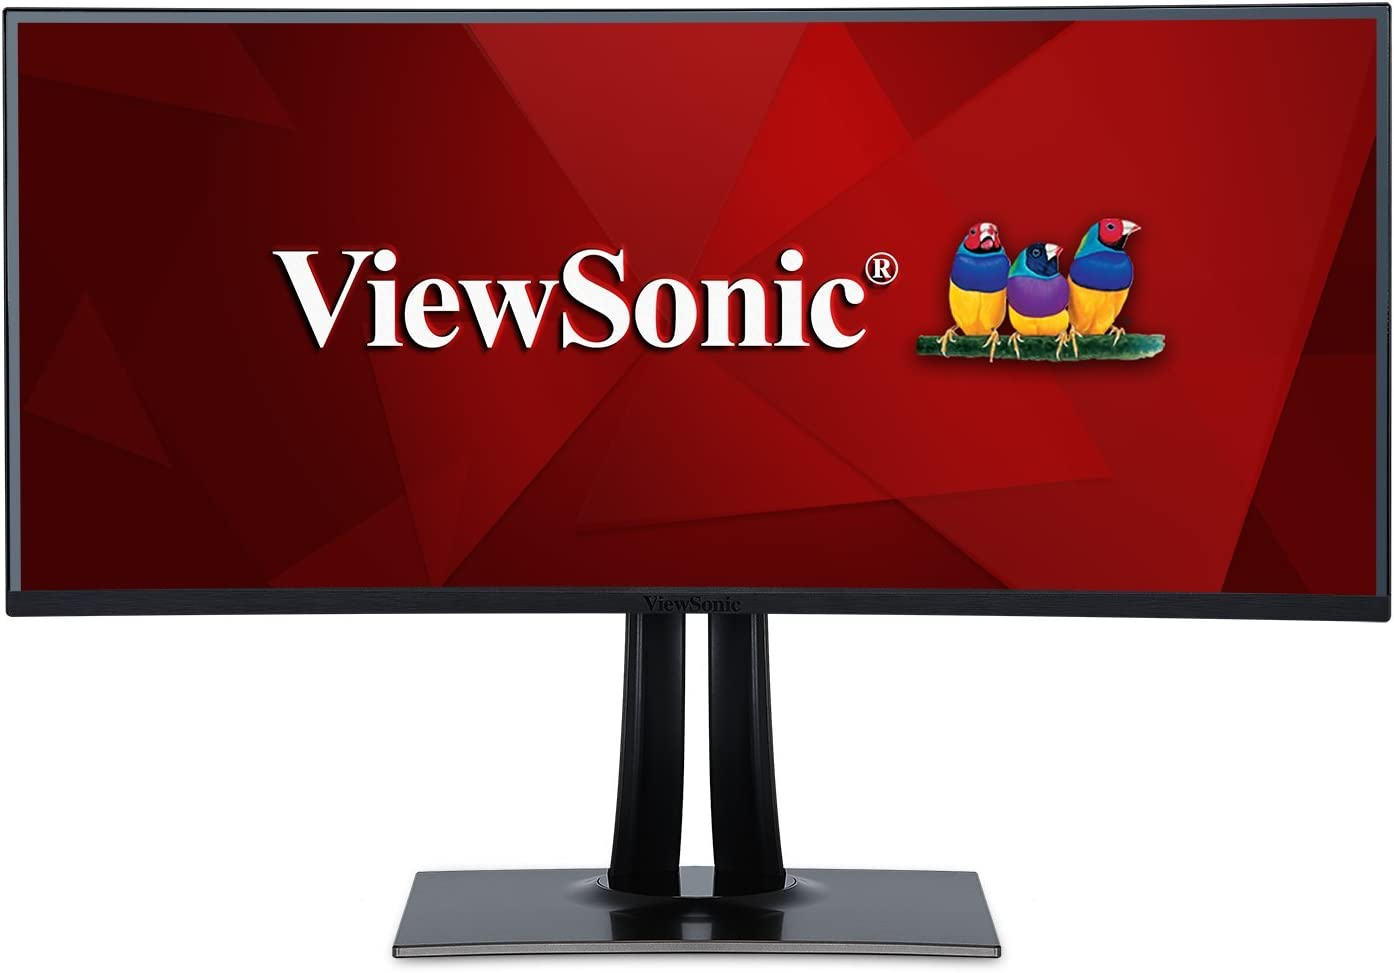 ViewSonic VP3881 38in IPS Ultra Wide Curved Pro Monitor, HDMI, DisplayPort, USB 3.1 Type C, Hardware Calibration (Renewed)